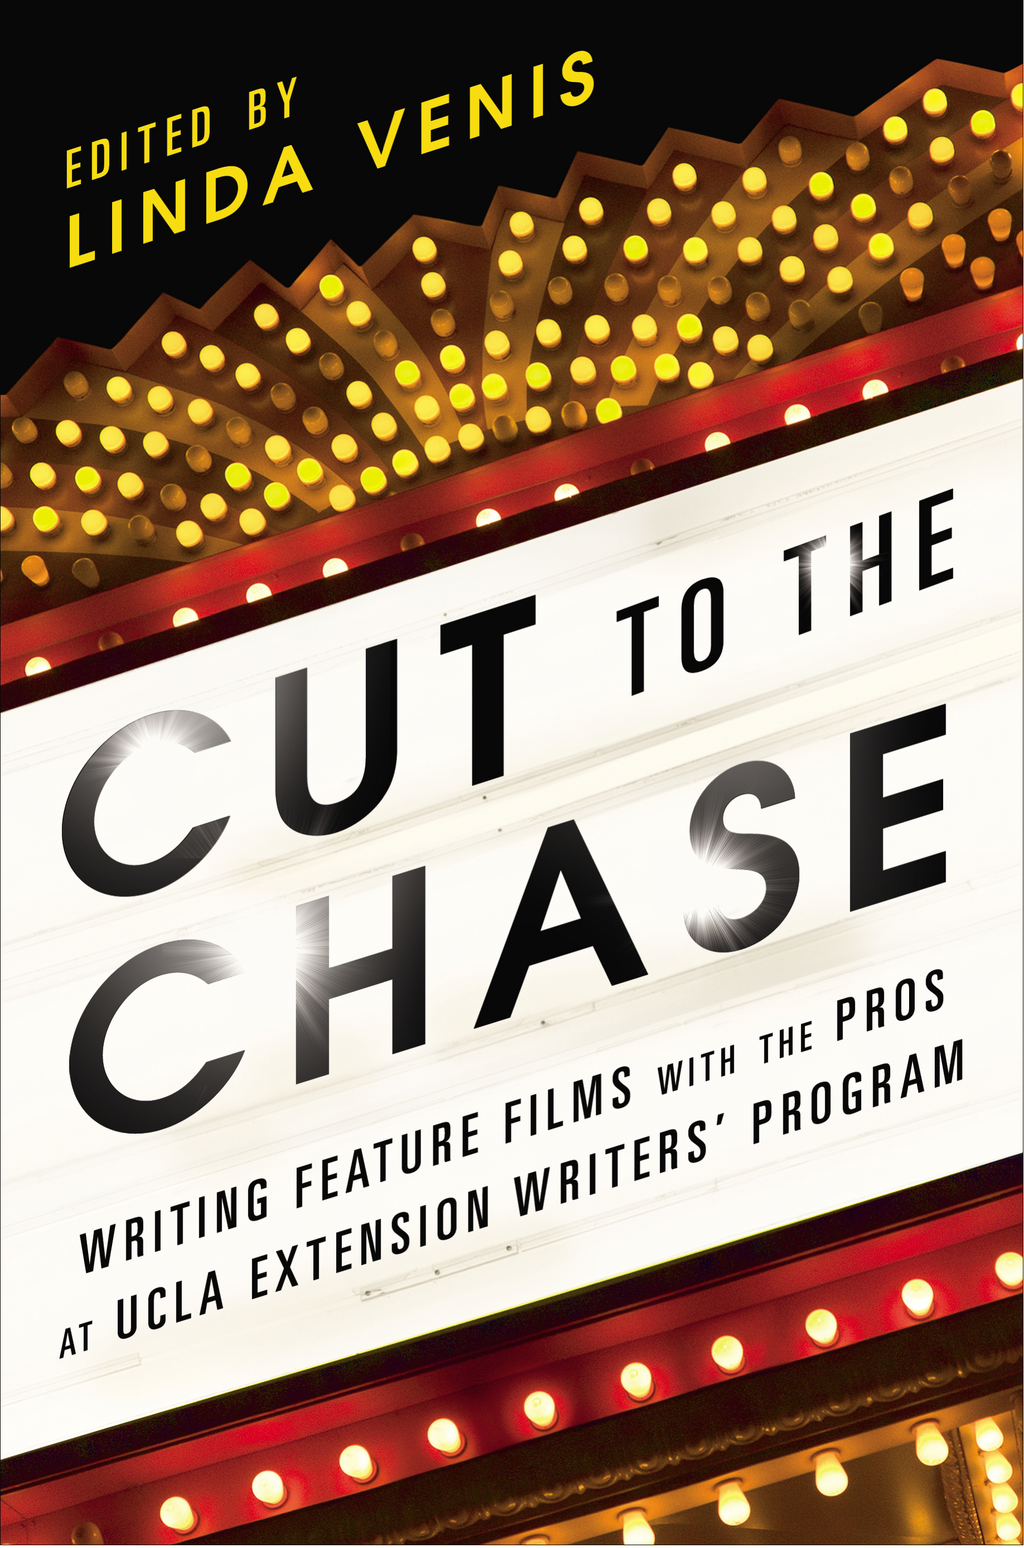 Cut to the Chase Writing Feature Films with the Pros at UCLA Extension Writers' Program